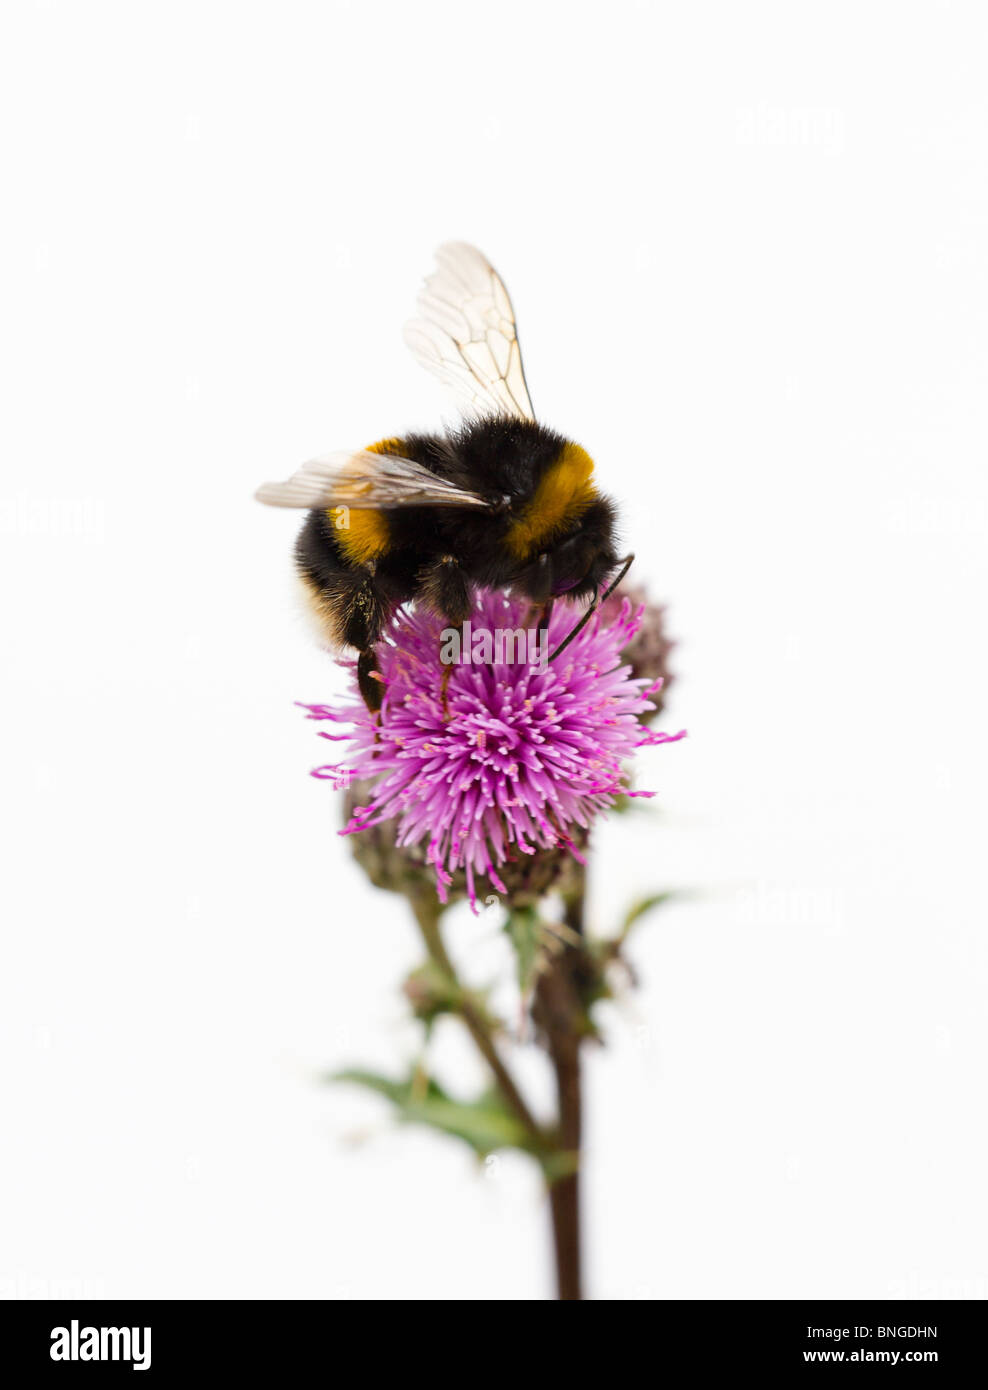 Bumble Bee on Thistle - Stock Image